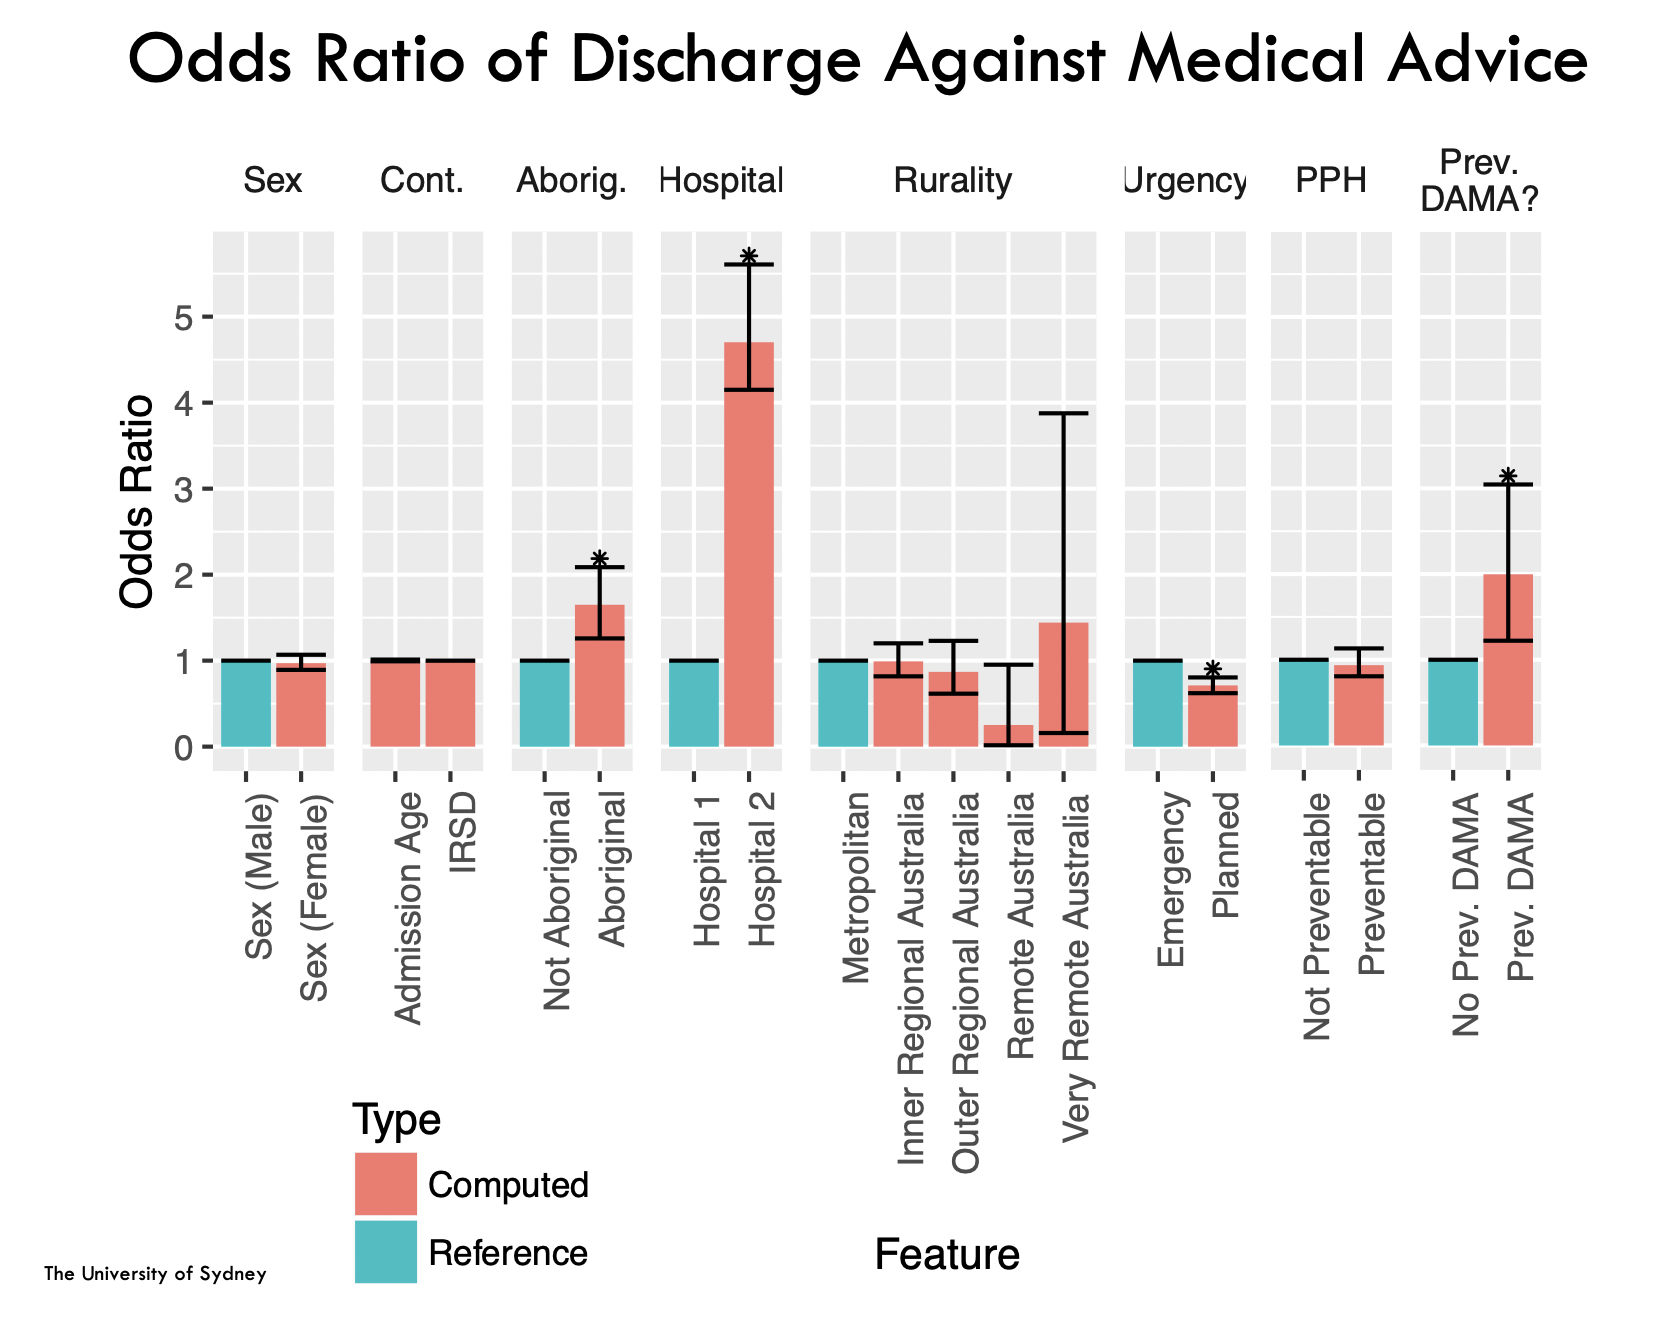 Discharge against medical advice in the Sydney Children's Hospital Network